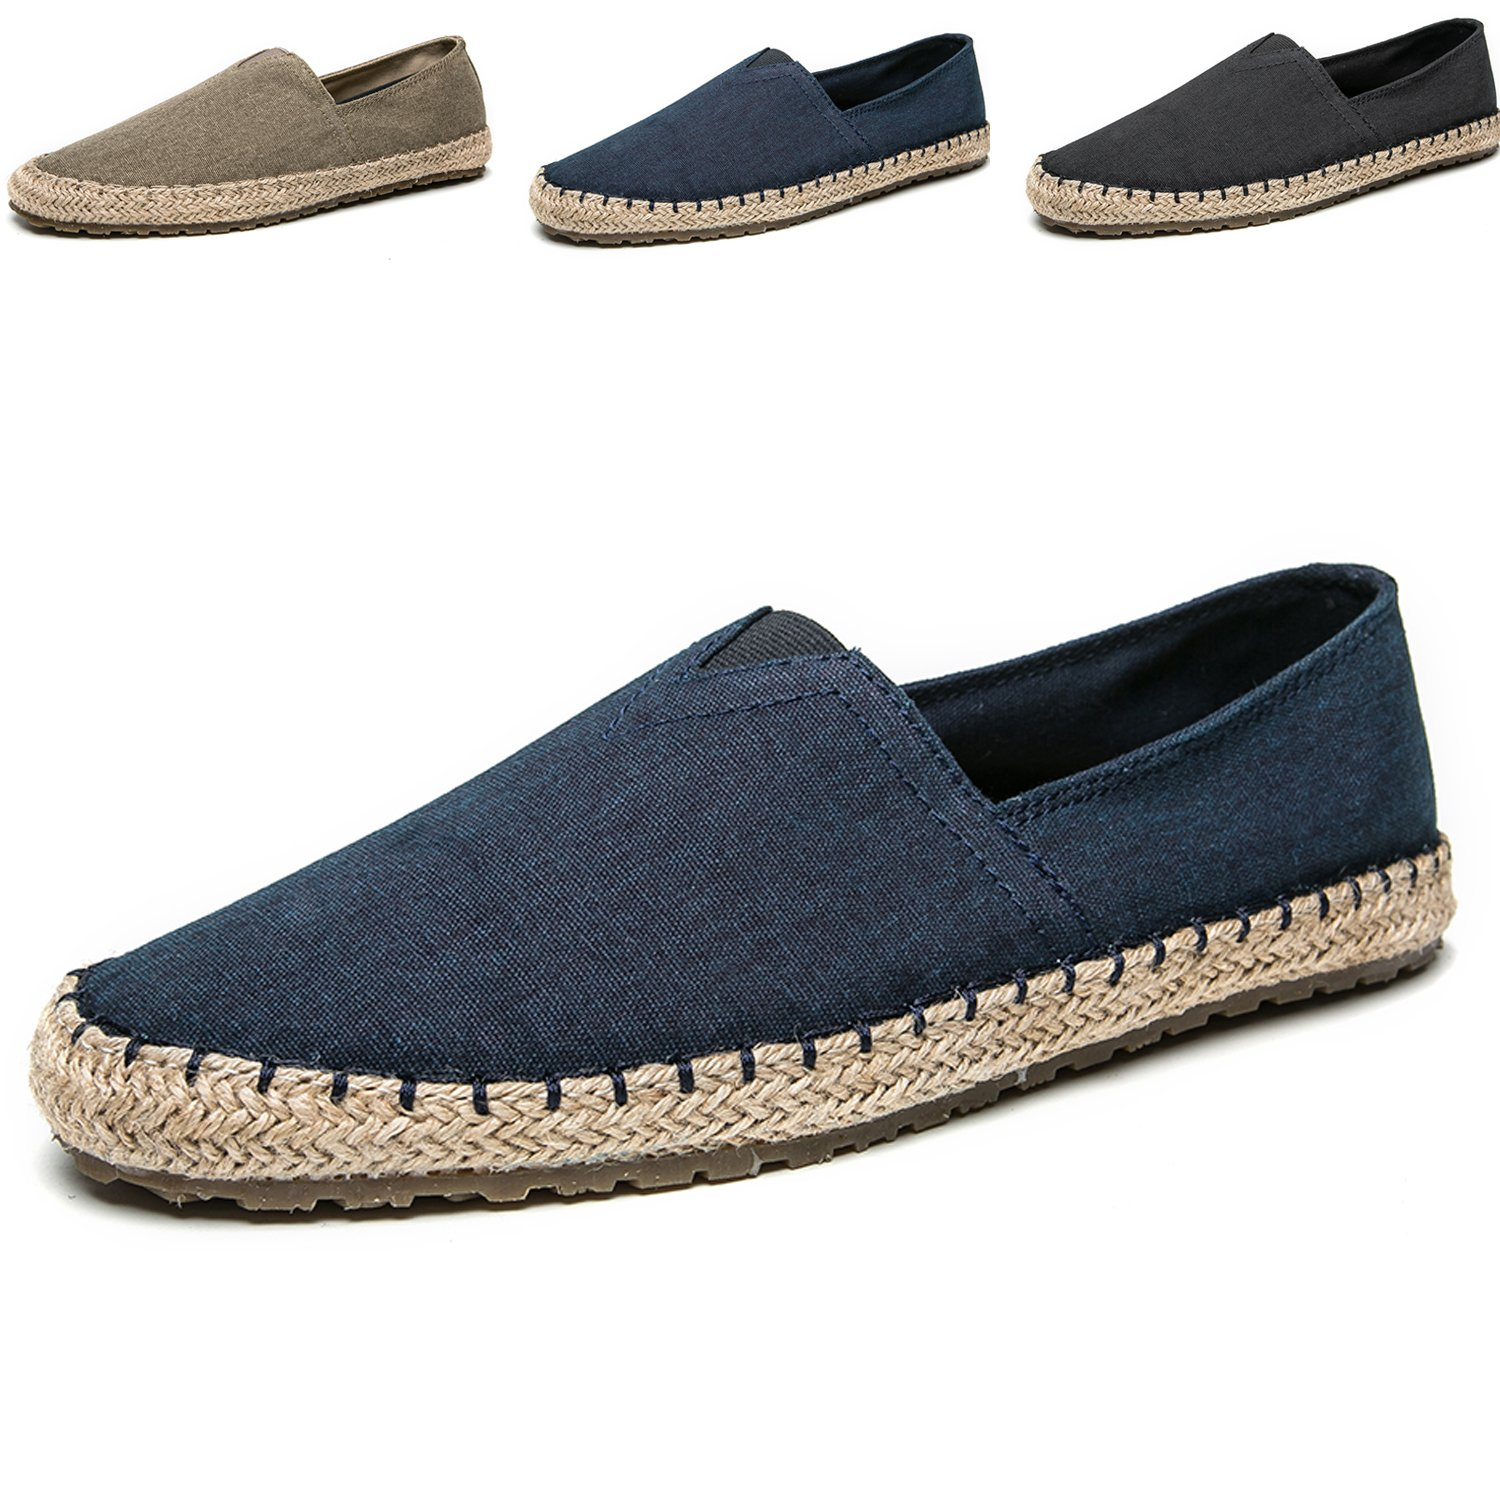 Men's Casual Cloth Shoes Canvas Slip on Loafers Espadrille Leisure Breathable Shoes Blue 11.5M US